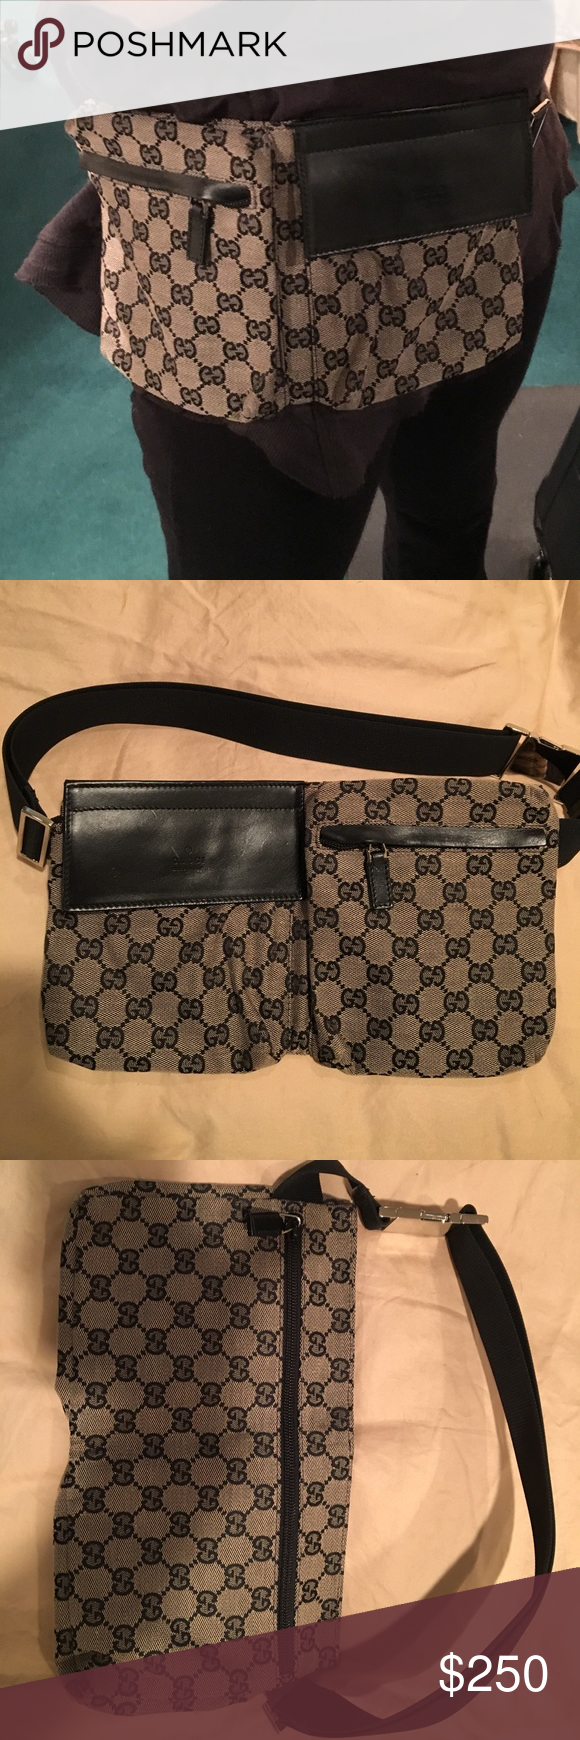 9717f97f83fb Gucci waist bag This gently worn authentic Gucci Fanny pack is amazing. In  almost perfect condition. Great for new moms on the go. Hands free. Gucci  Bags